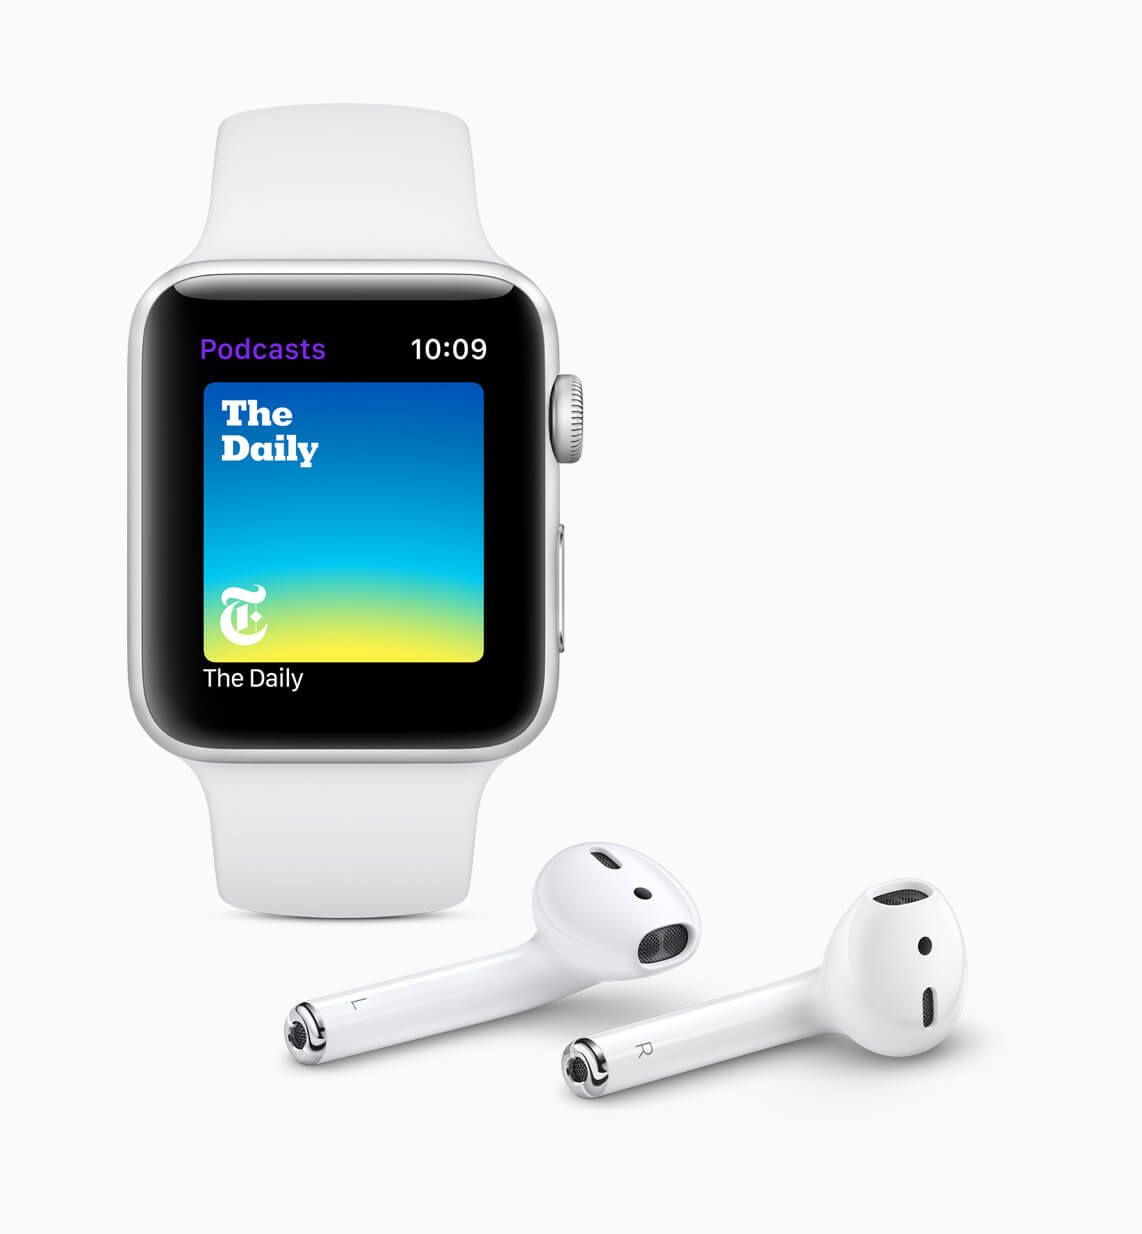 watchOS 5 Podcasts - Apple